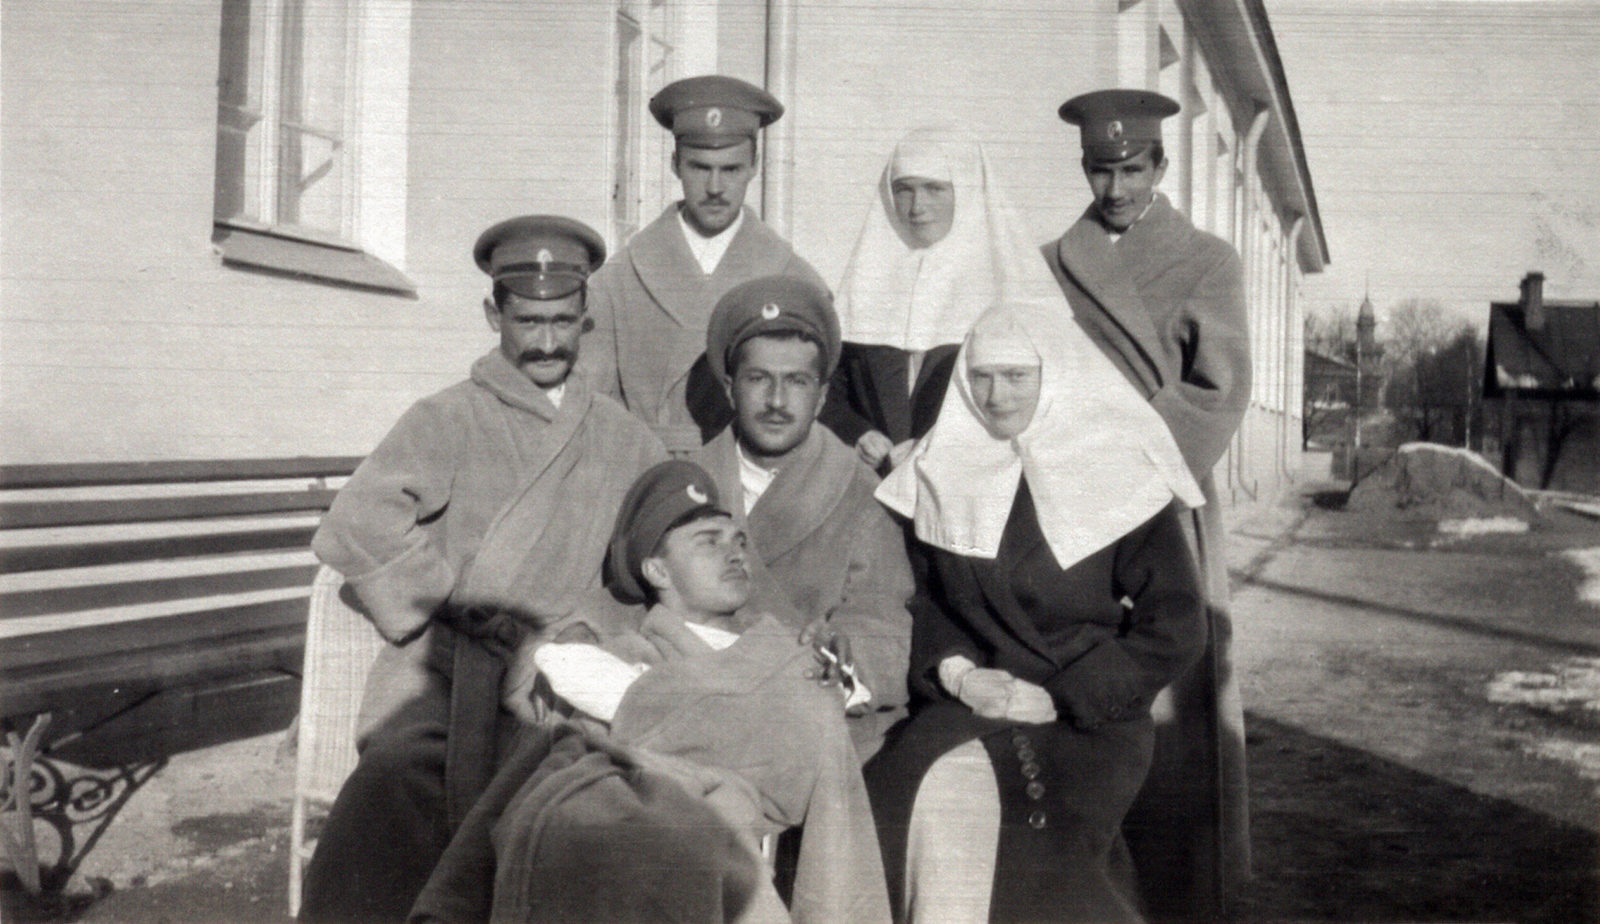 Grand Duchesses Olga and Tatiana with wounded soldiers